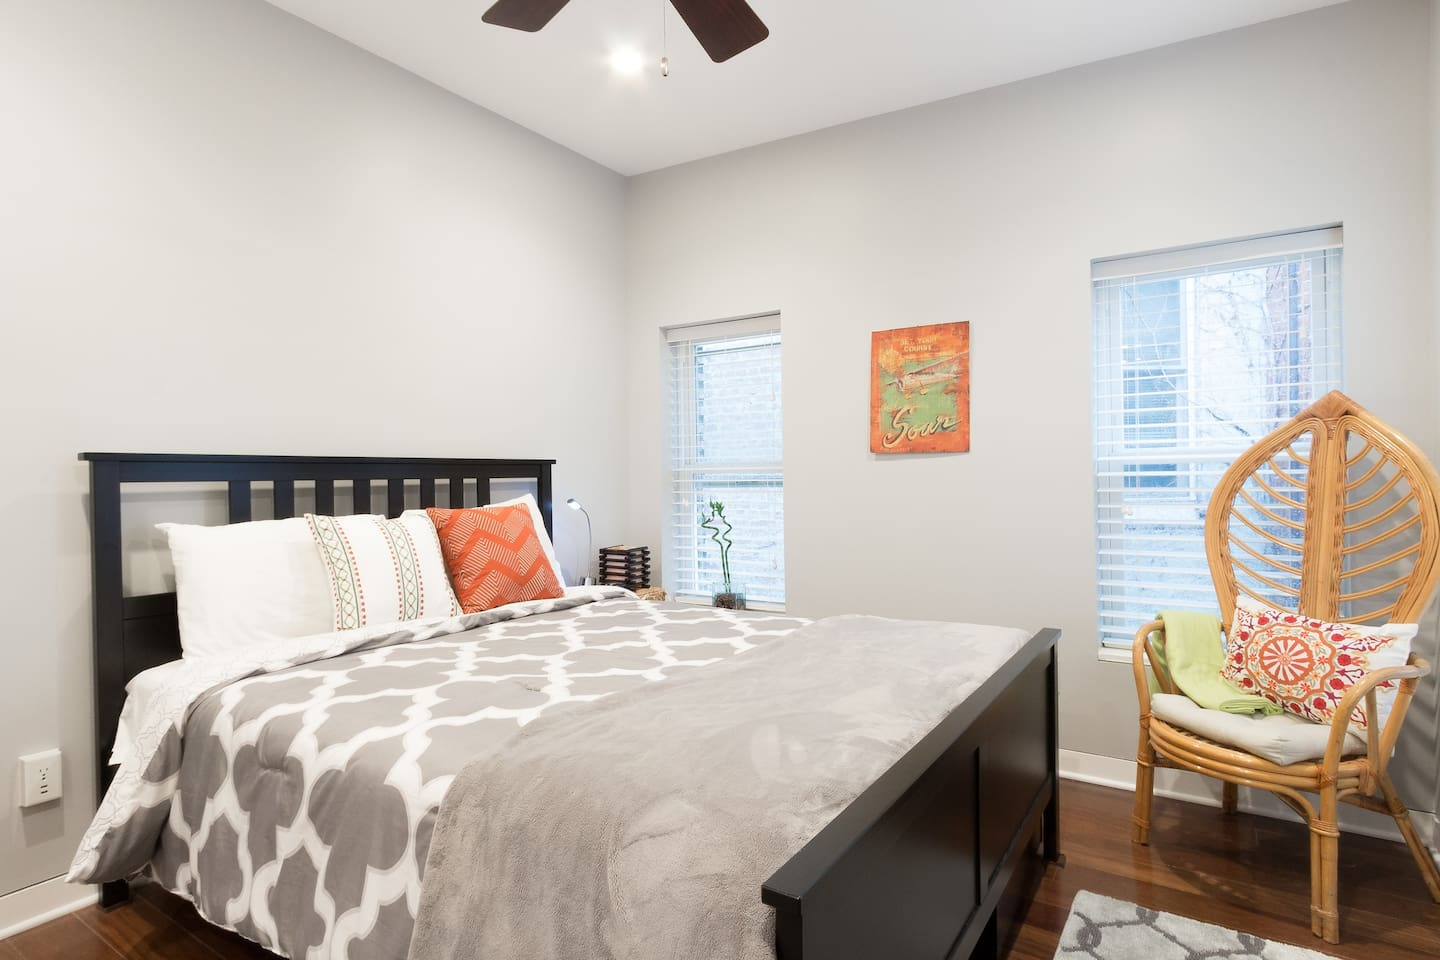 Quiet bedroom away from the entertainment and excitement at the front door